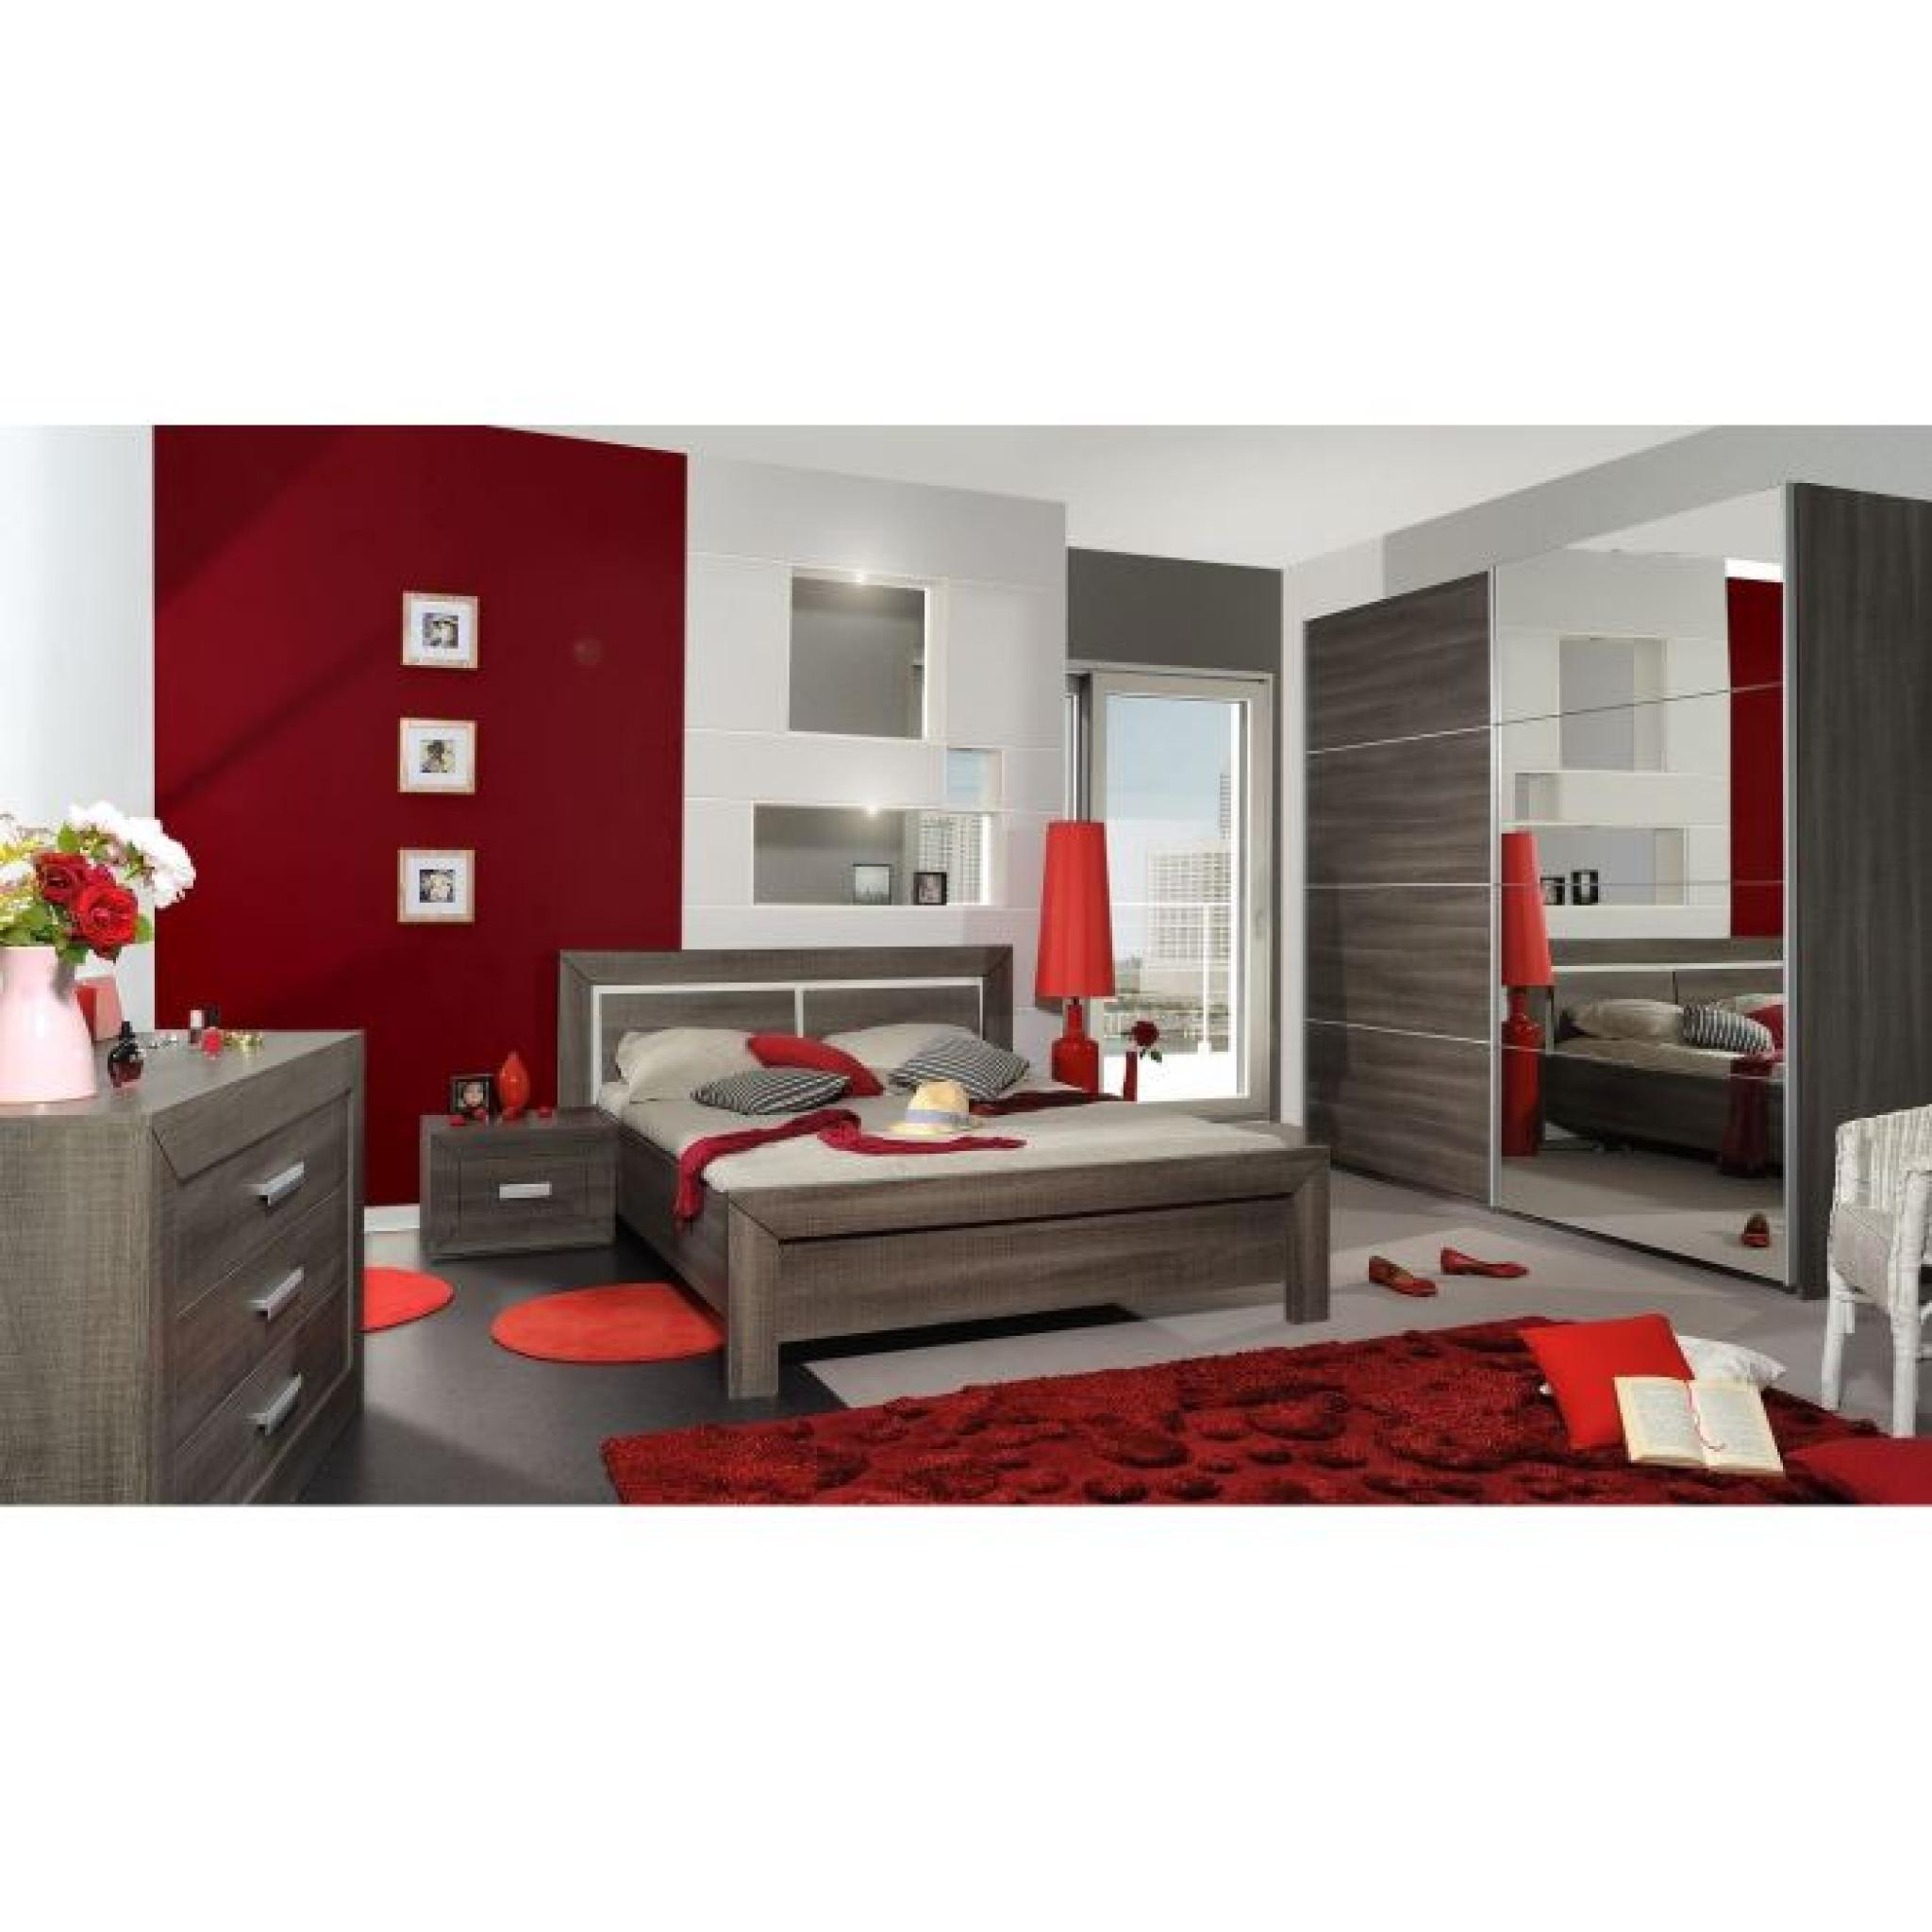 avignon lit adulte 160 x 200 cm coloris bois gris achat vente lit pas cher couleur et. Black Bedroom Furniture Sets. Home Design Ideas